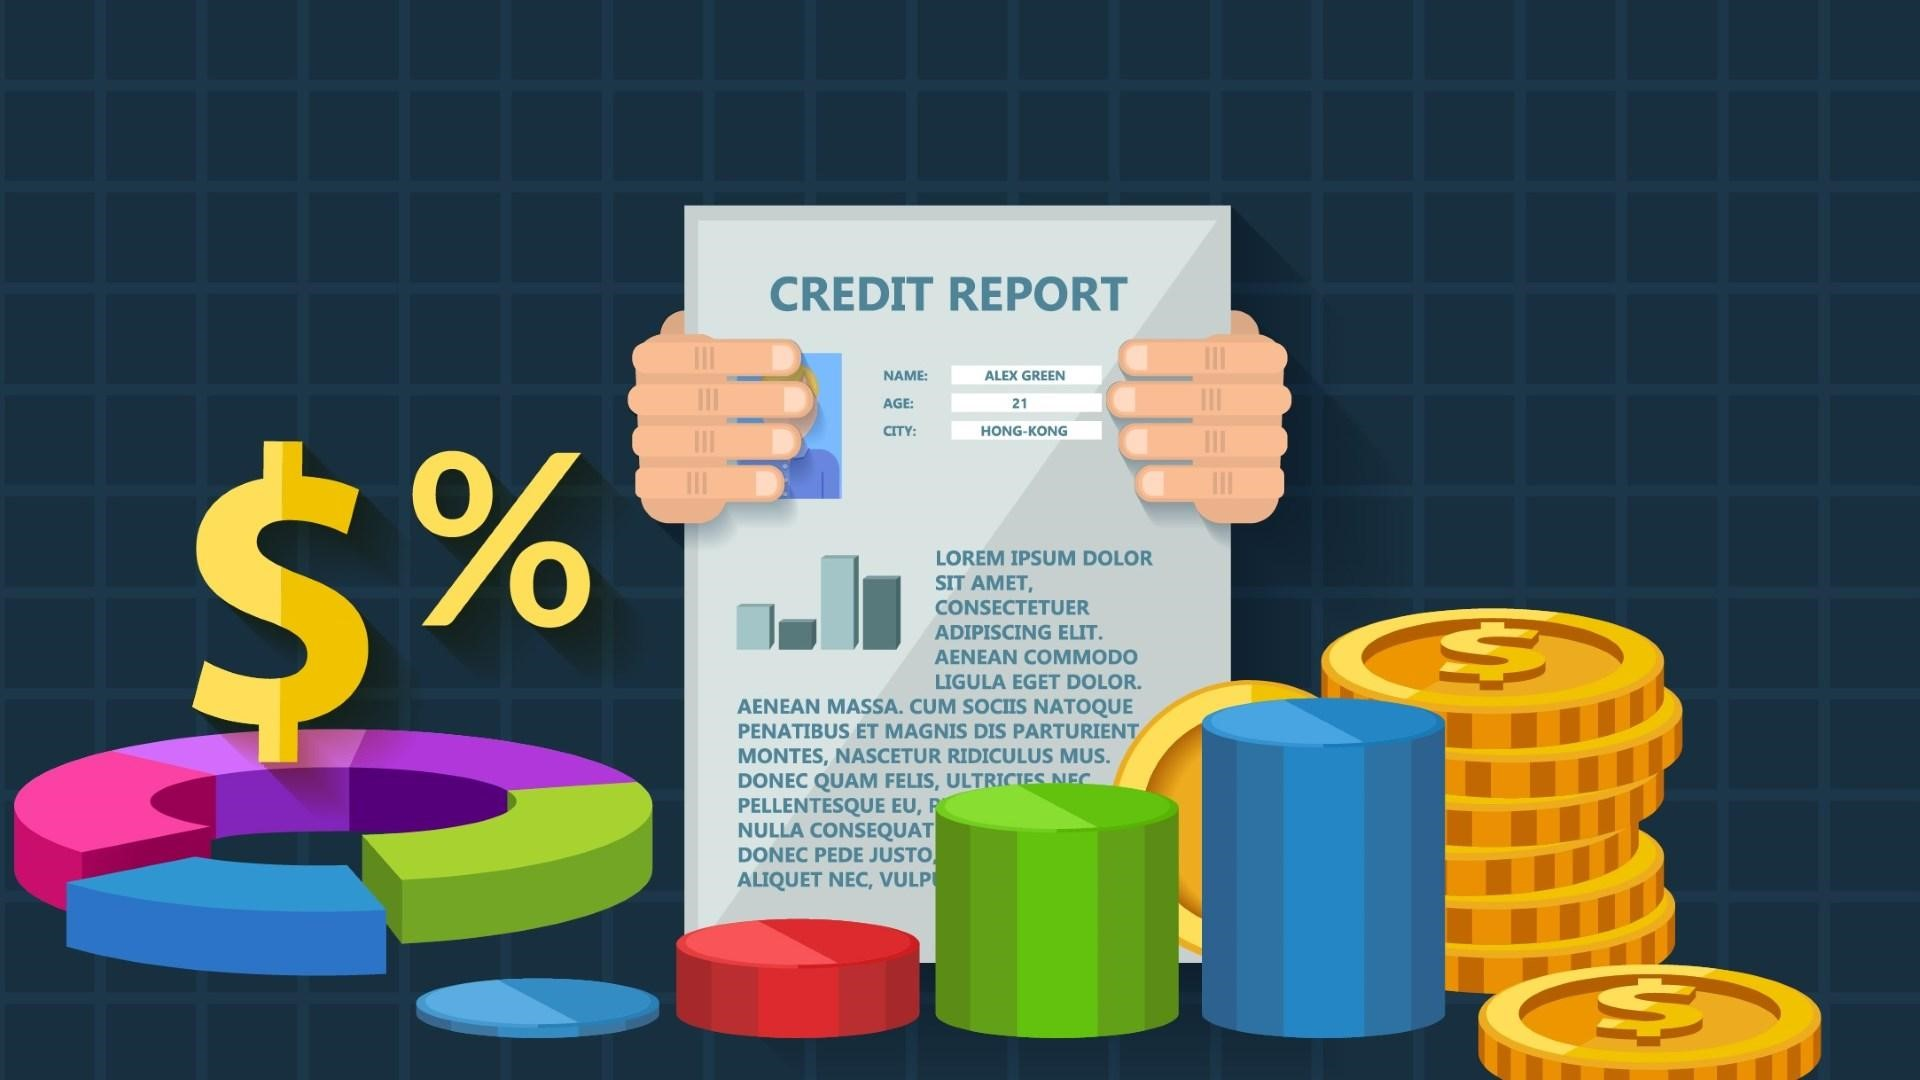 Credit Consolidation For Those With Bad Credit